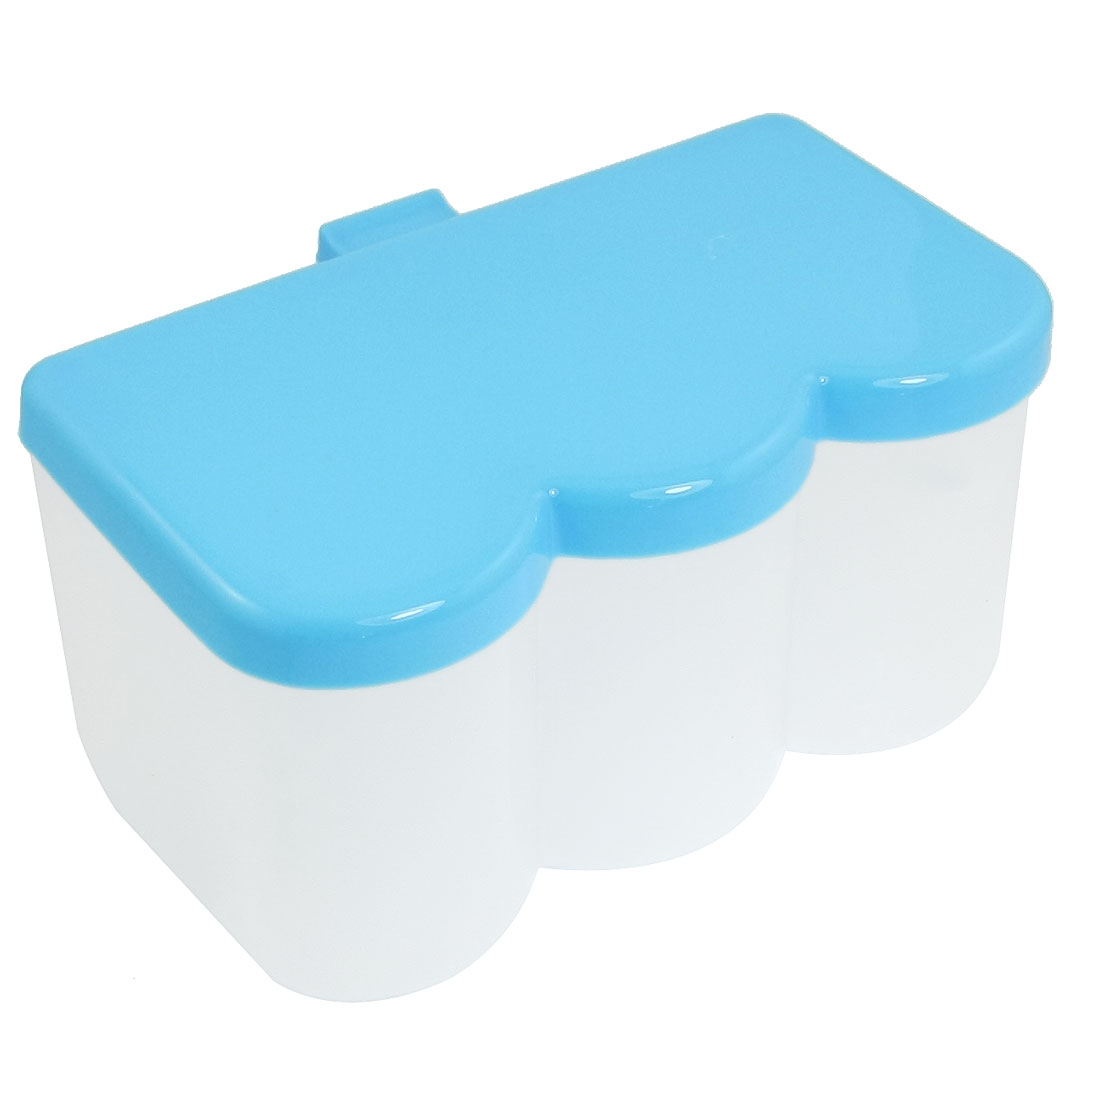 Kitchen Plastic 3 Compartment Spices Sugar Box Container Skyblue w 2 Spoons